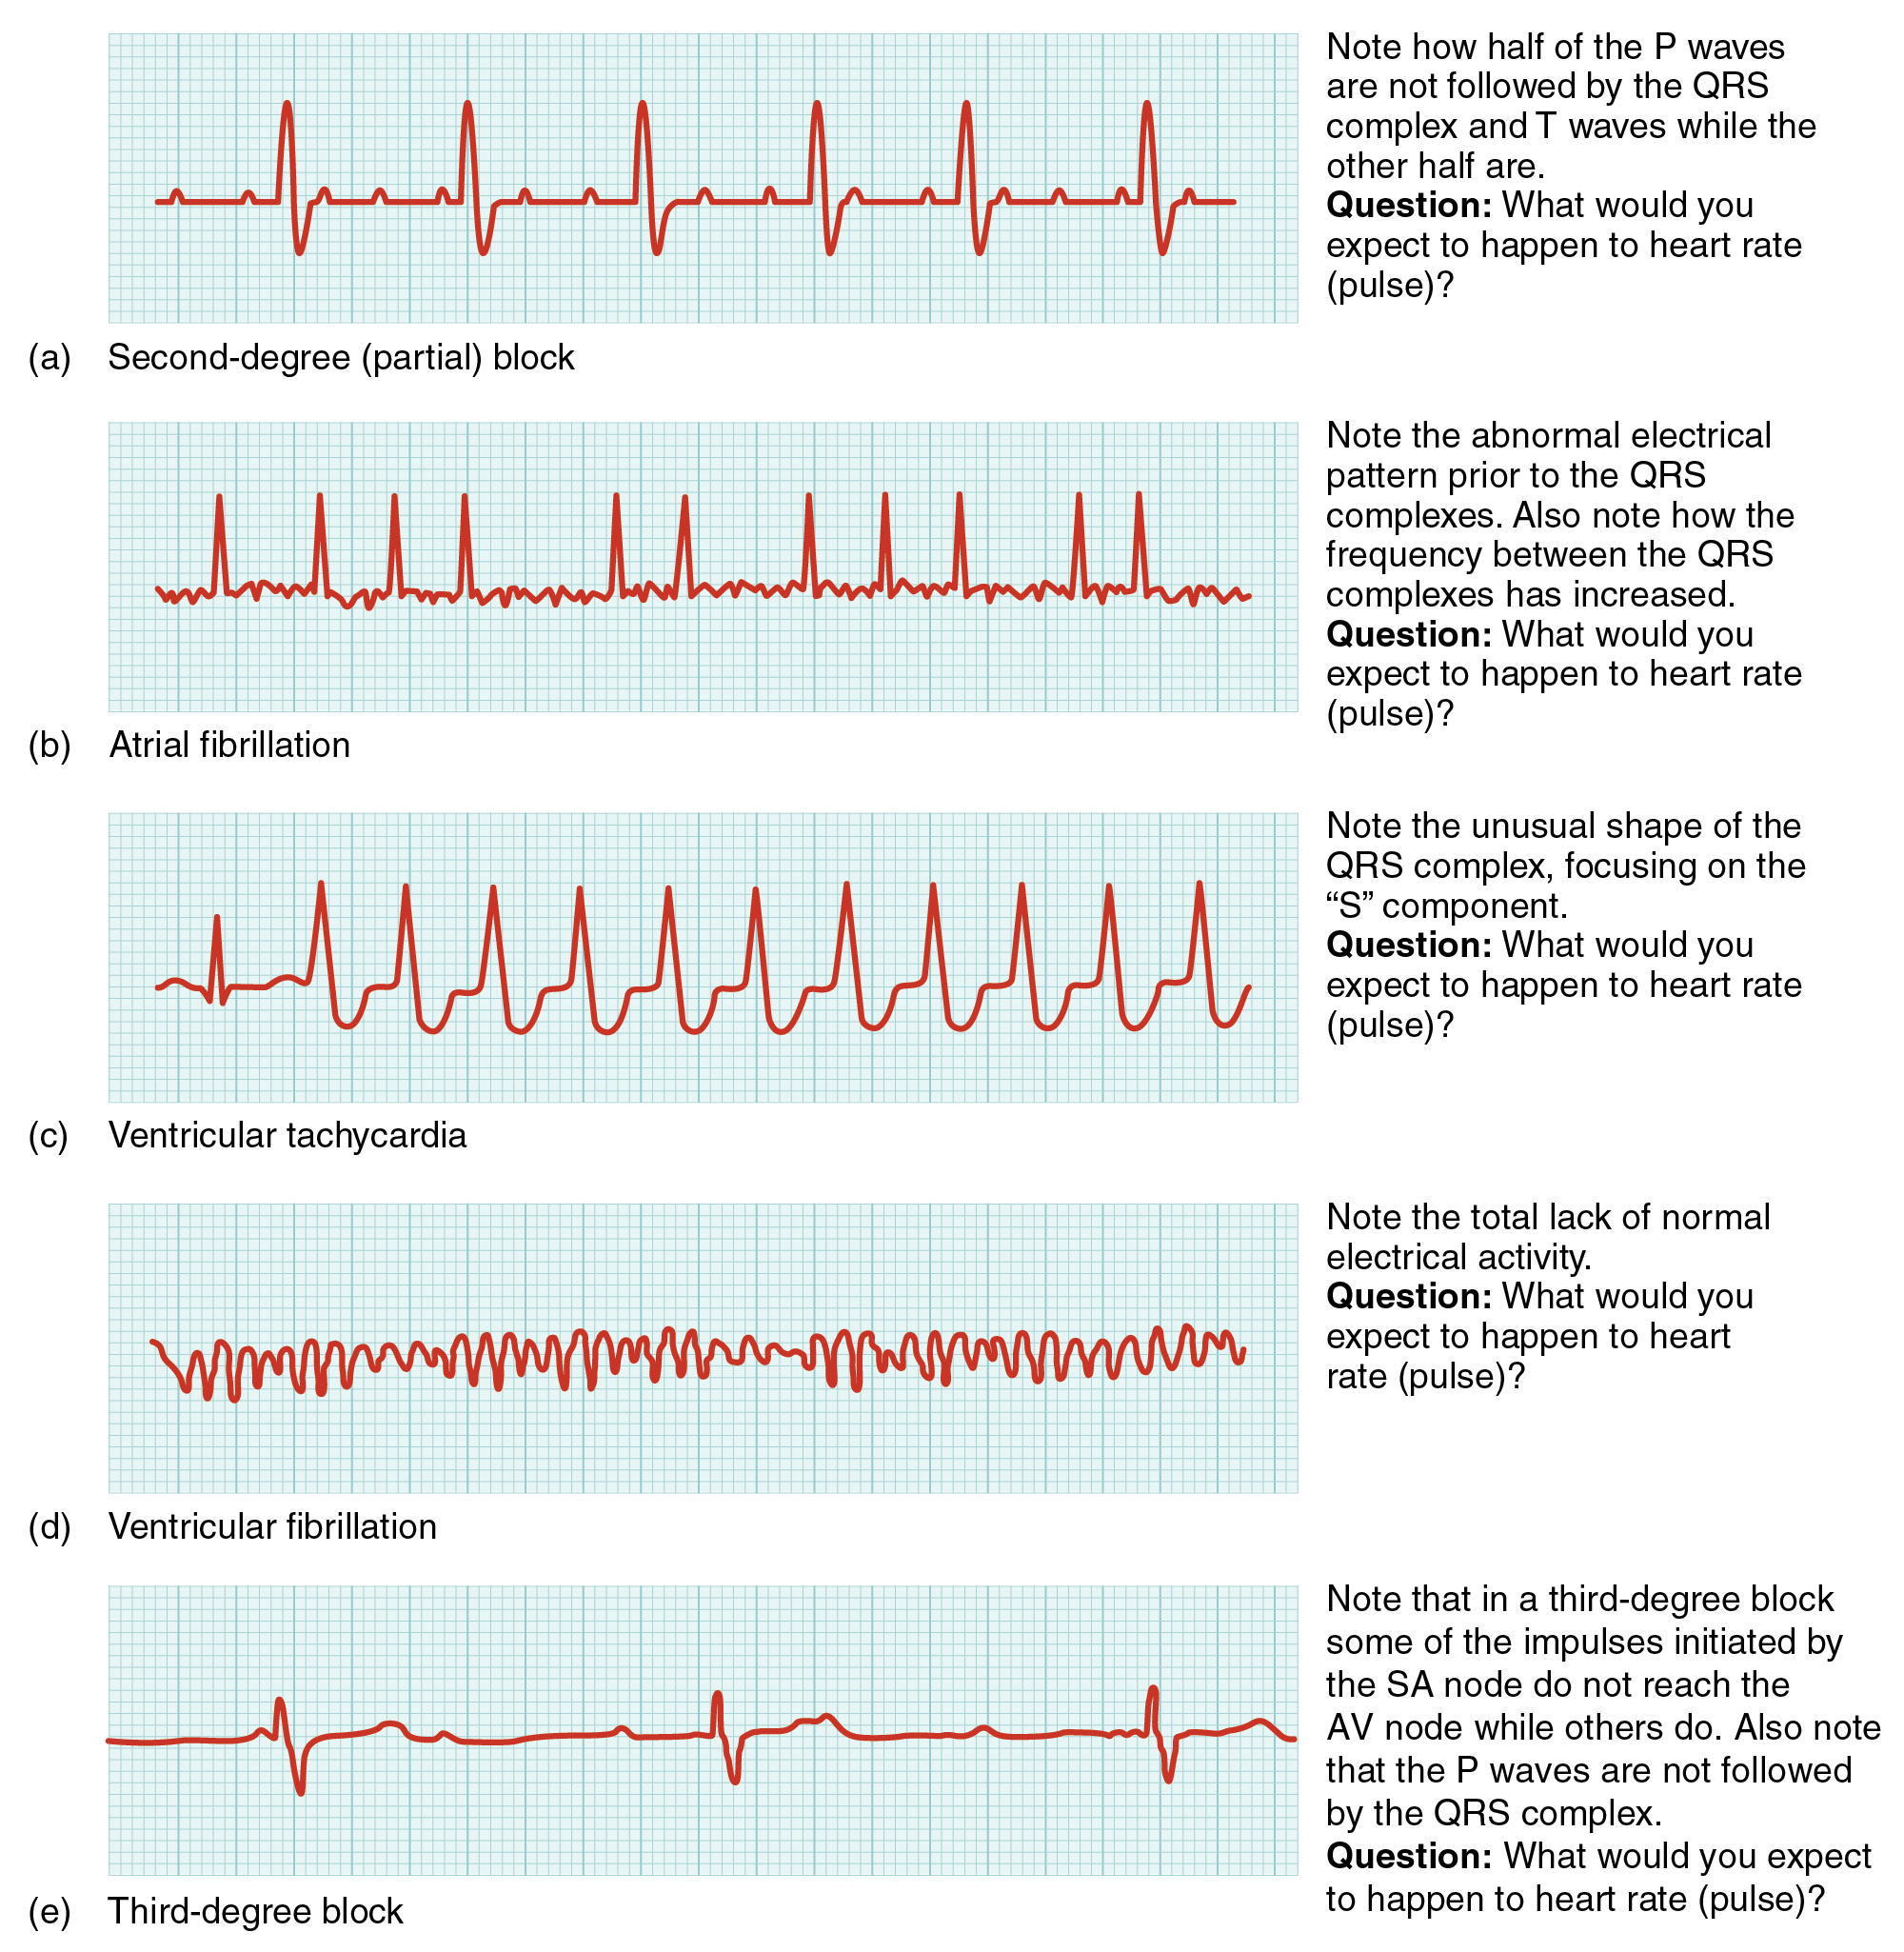 Tracingreadingwiringdiagrams 192 Cardiac Muscle And Electrical Activity Anatomy Physiology In This Image The Qt Cycle For Different Heart Conditions Are Shown From Top To